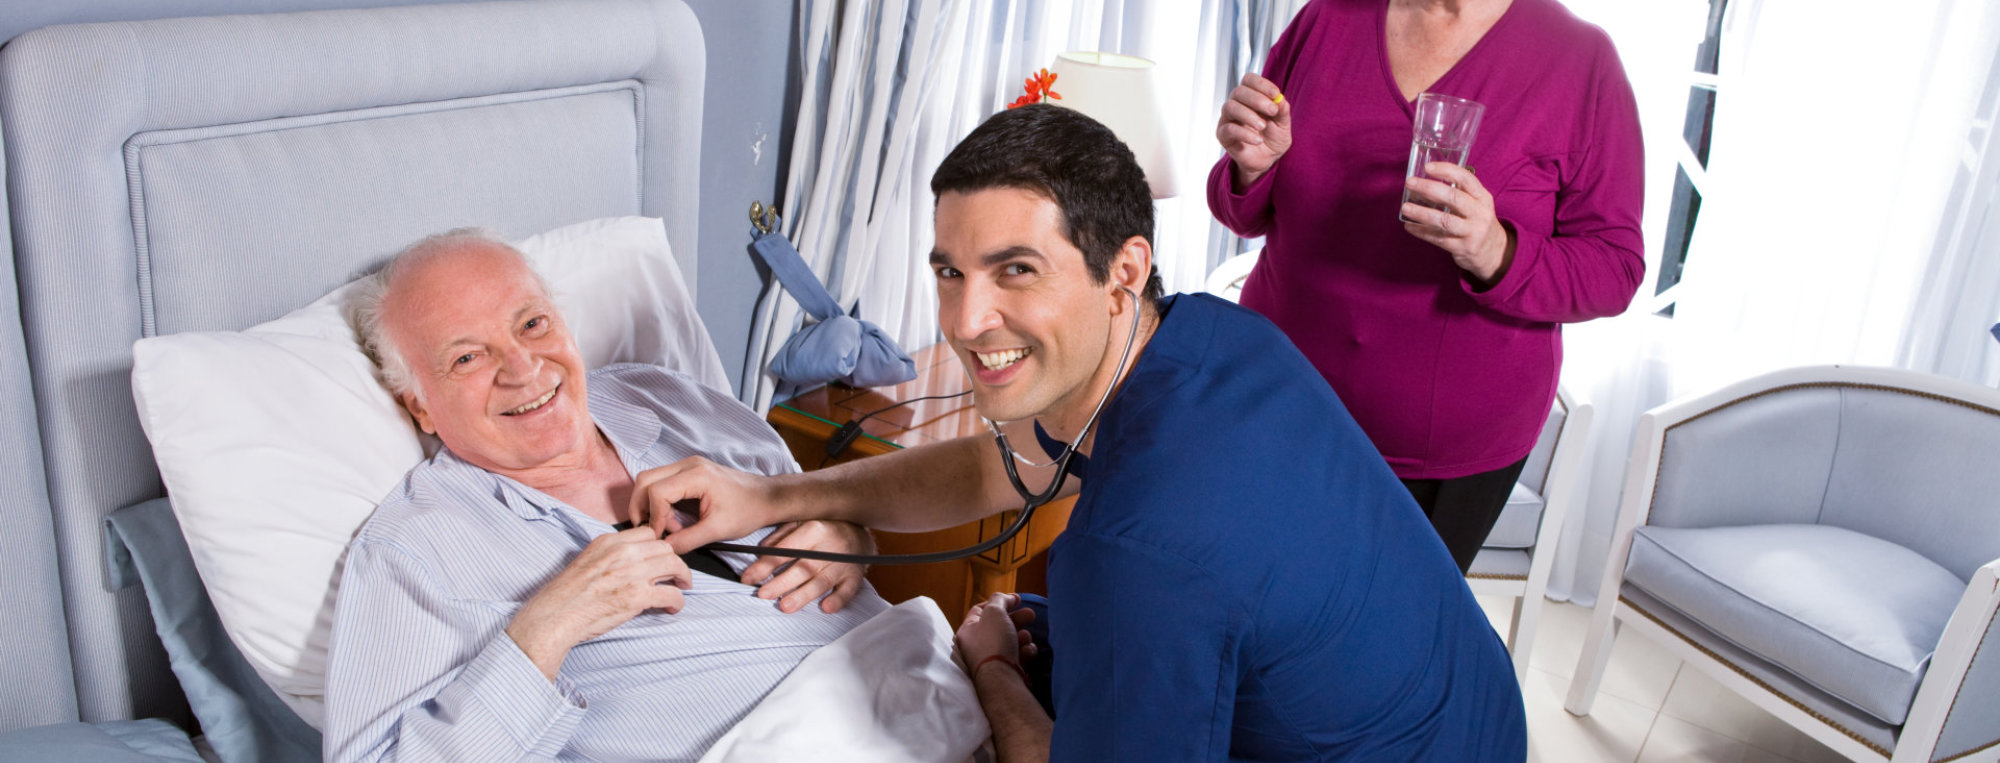 caregiver checking the measure of heartbeat of senior man on the bed